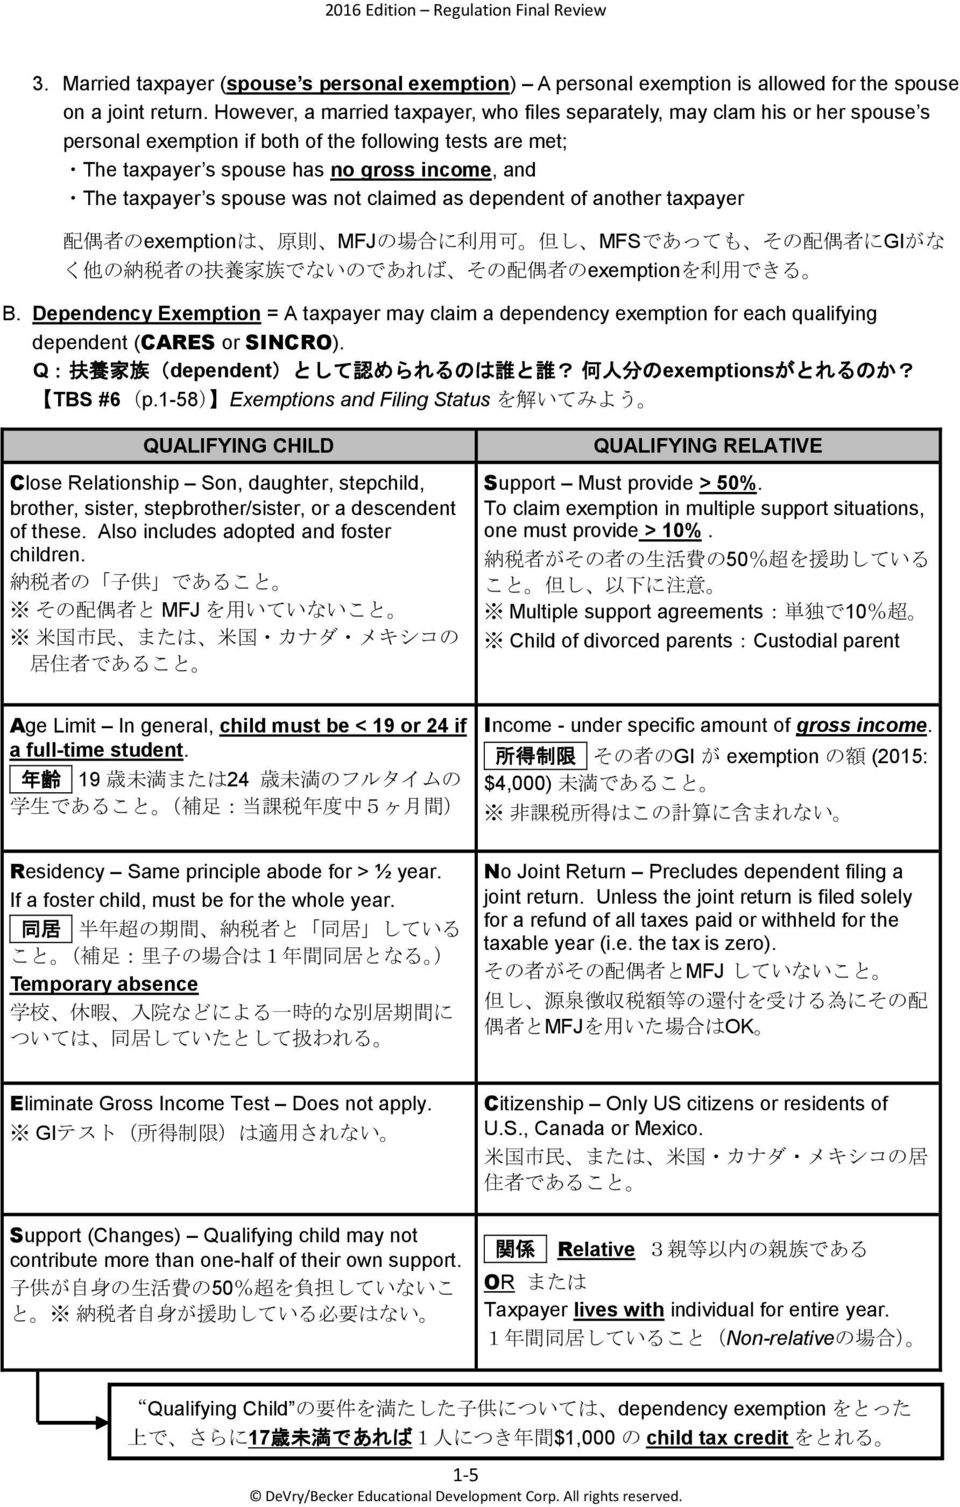 s spouse was not claimed as dependent of another taxpayer 配 偶 者 のexemptionは 原 則 MFJの 場 合 に 利 用 可 但 し MFSであっても その 配 偶 者 にGIがな く 他 の 納 税 者 の 扶 養 家 族 でないのであれば その 配 偶 者 のexemptionを 利 用 できる B.